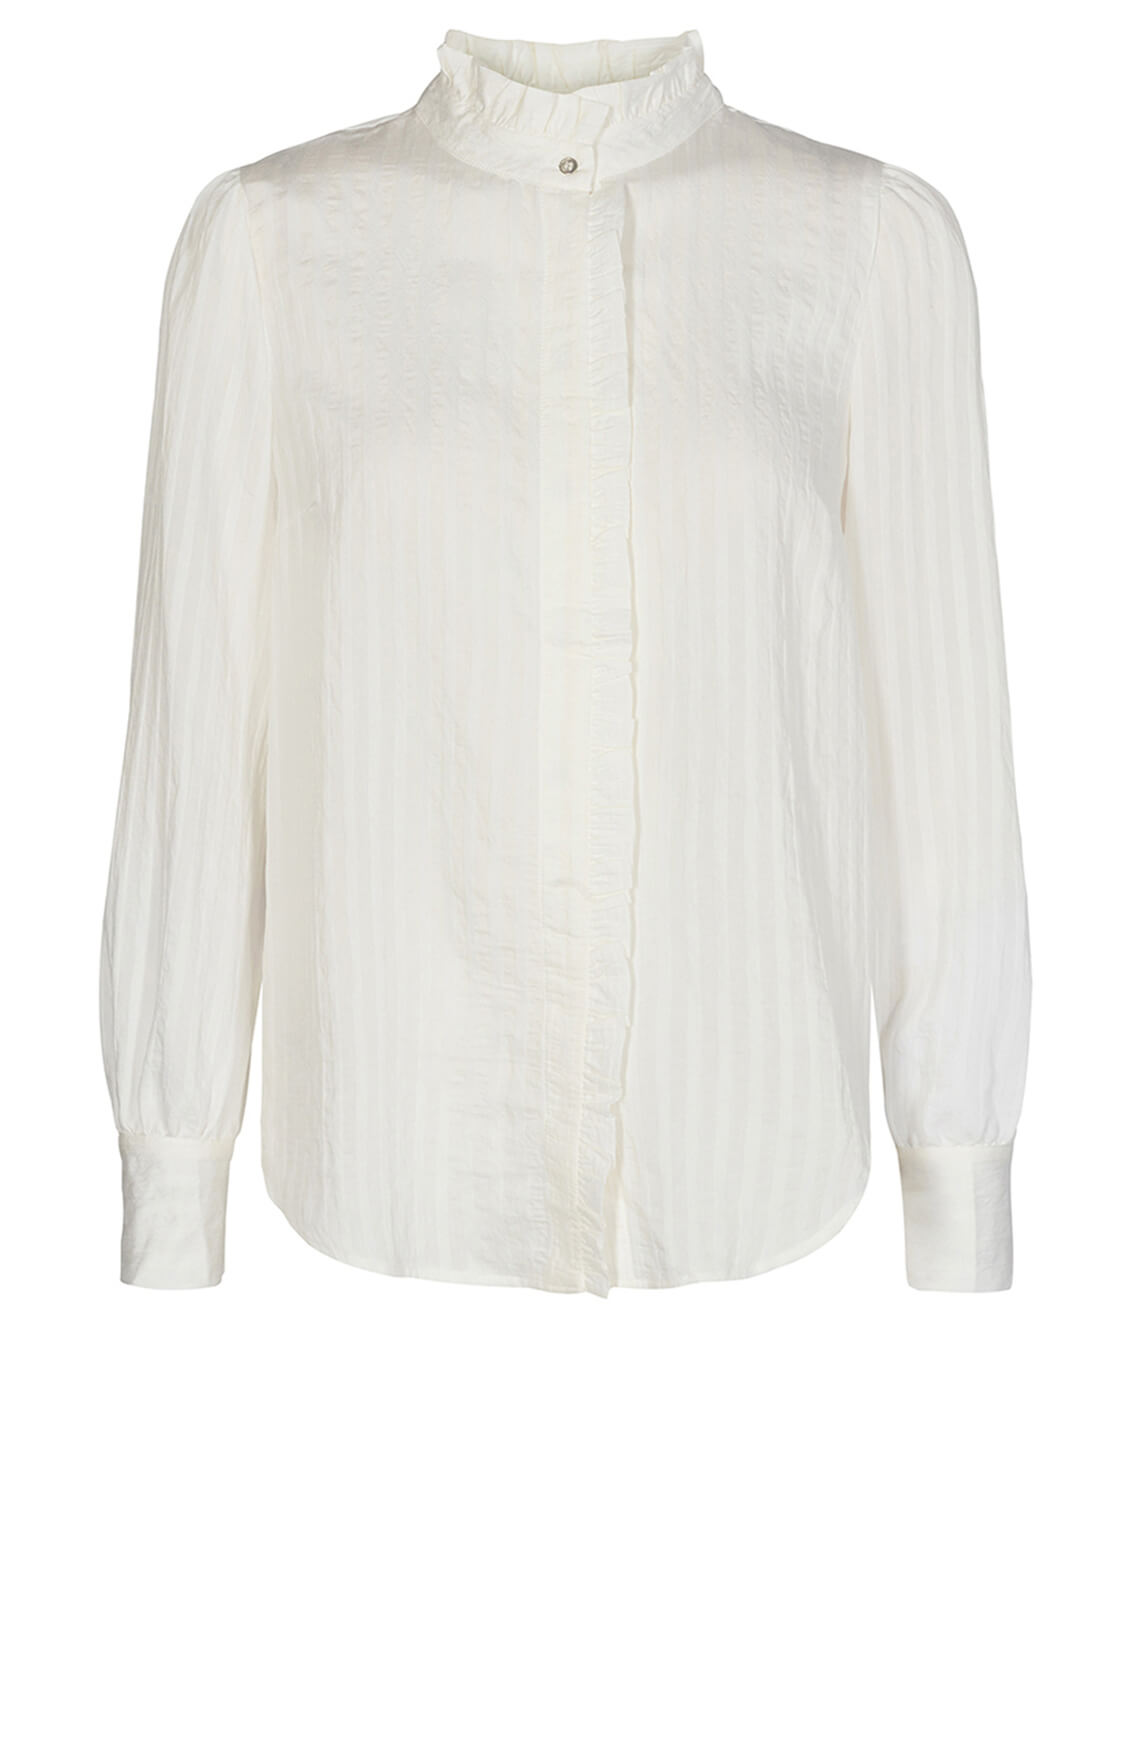 Co Couture Dames Jazz blouse wit